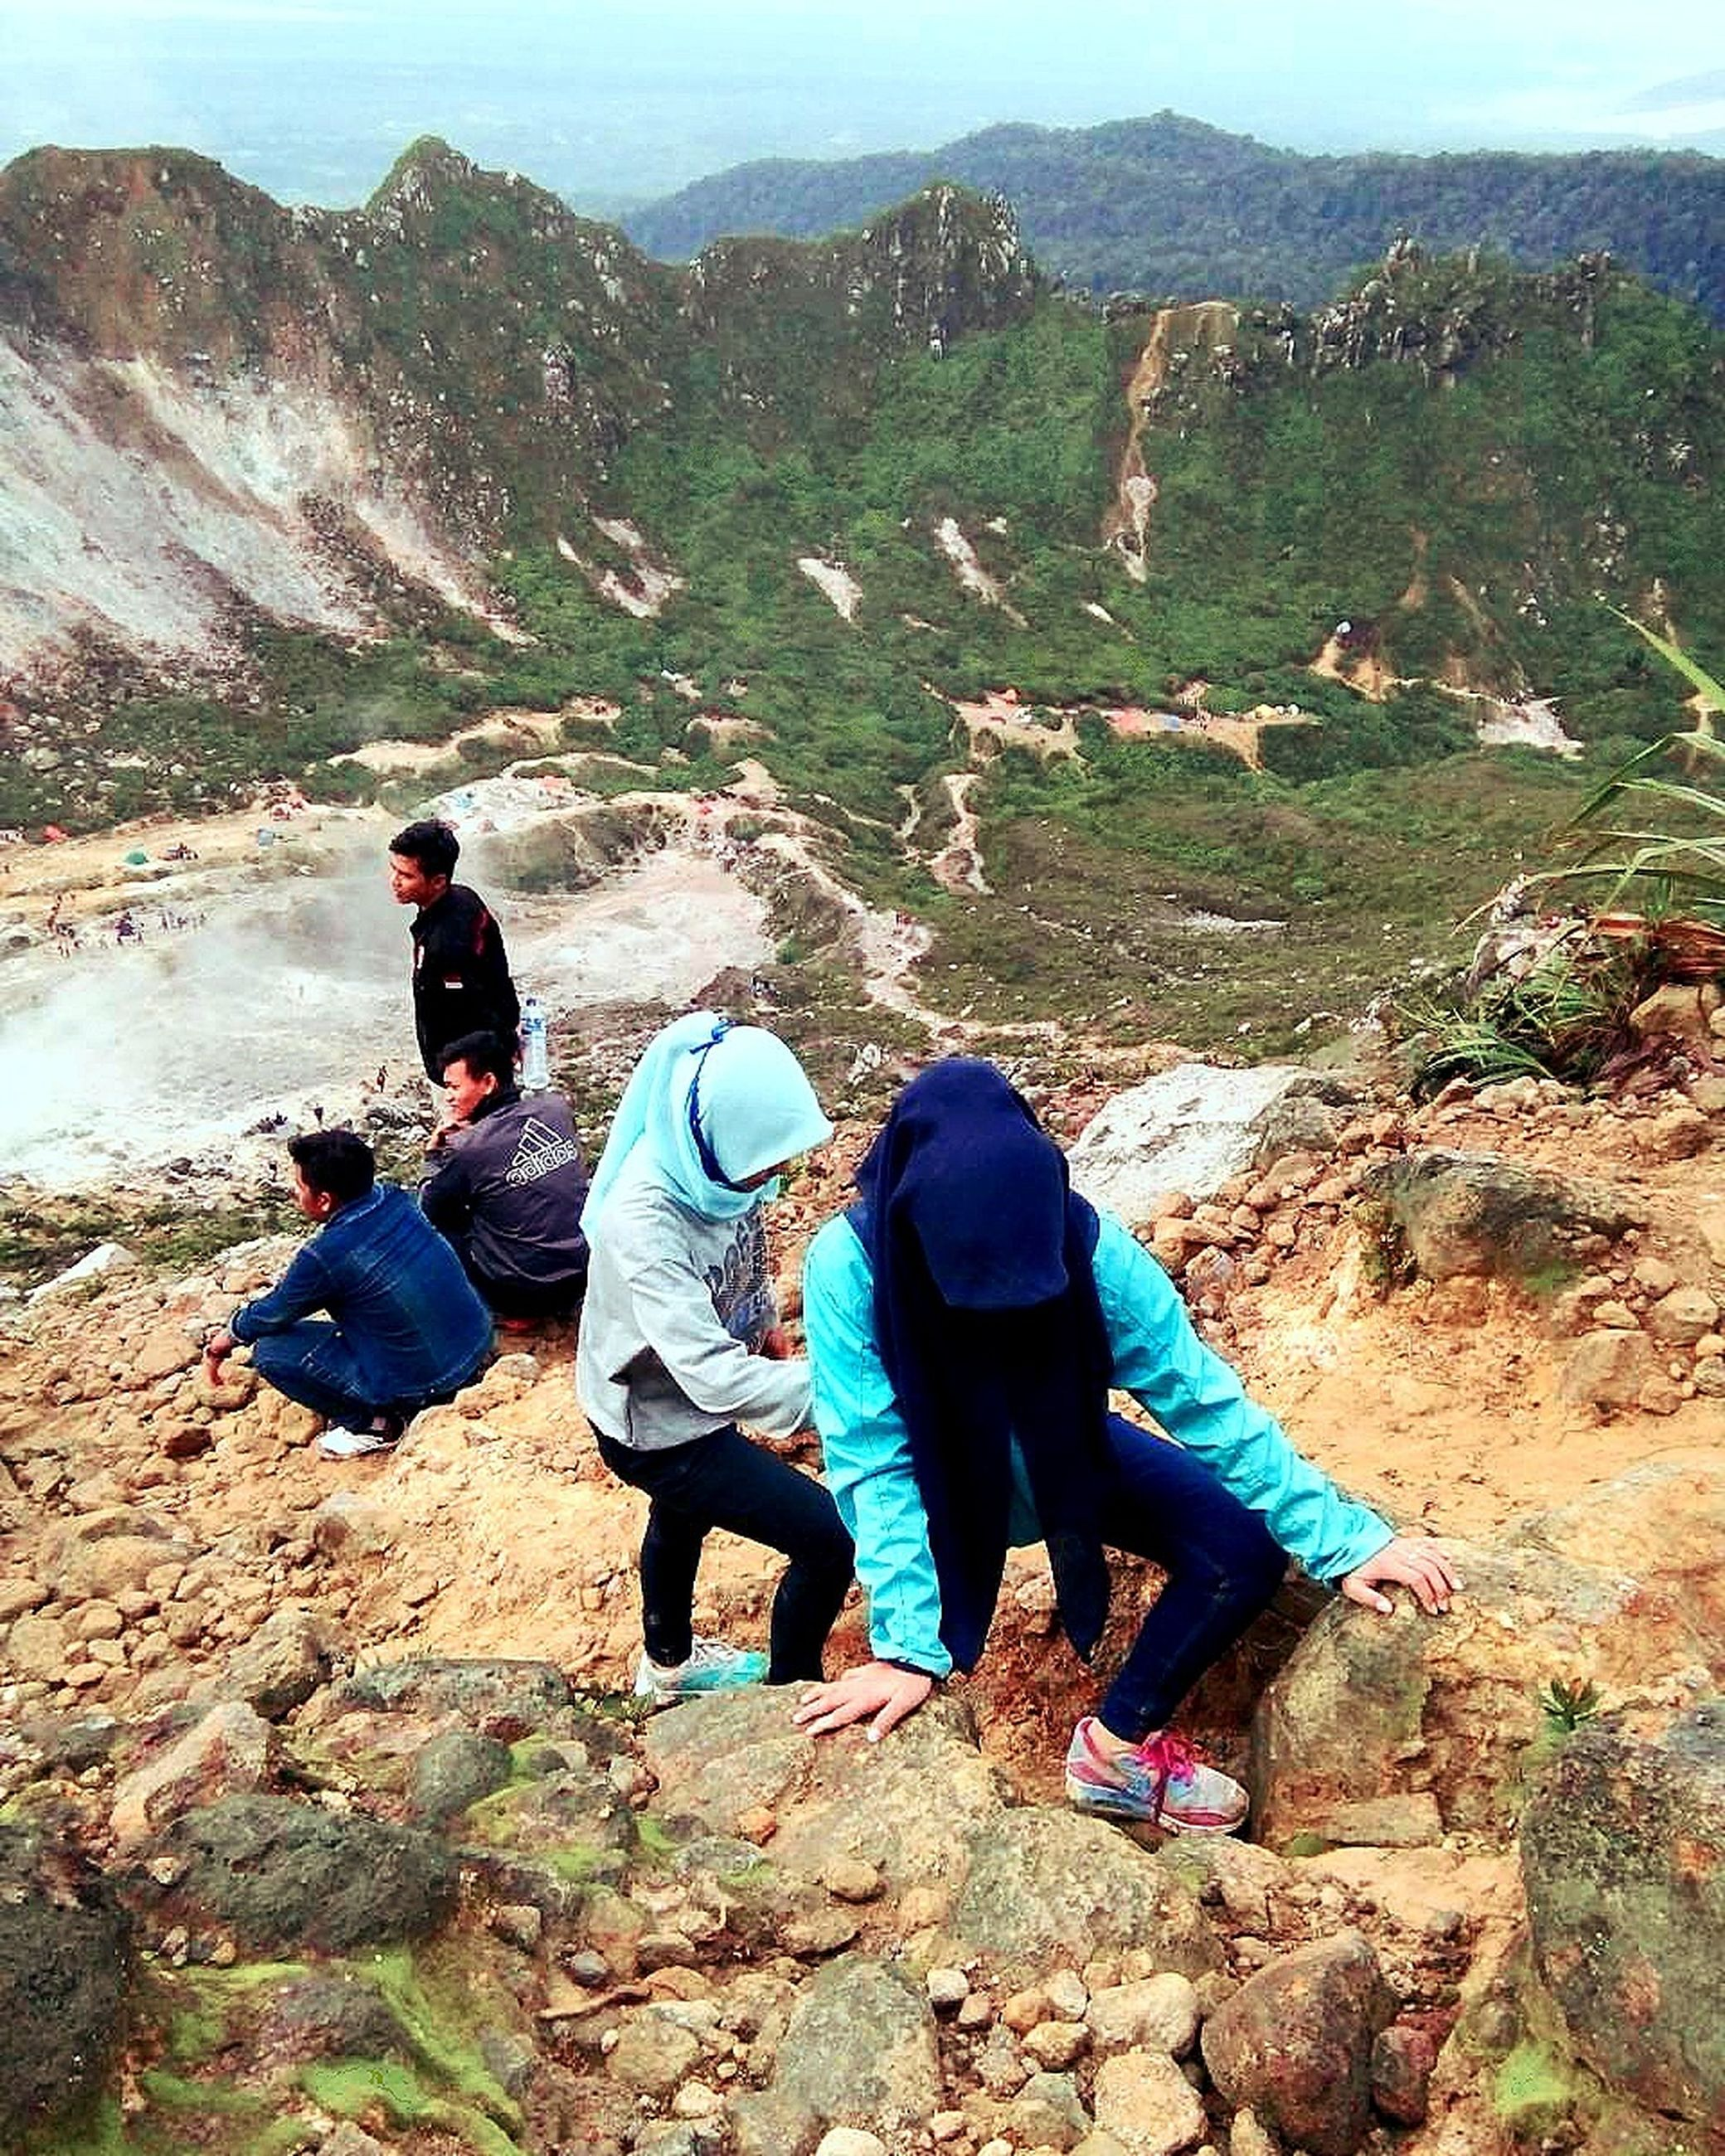 leisure activity, lifestyles, full length, mountain, sitting, rock - object, men, casual clothing, rear view, hiking, person, nature, backpack, relaxation, togetherness, tranquility, landscape